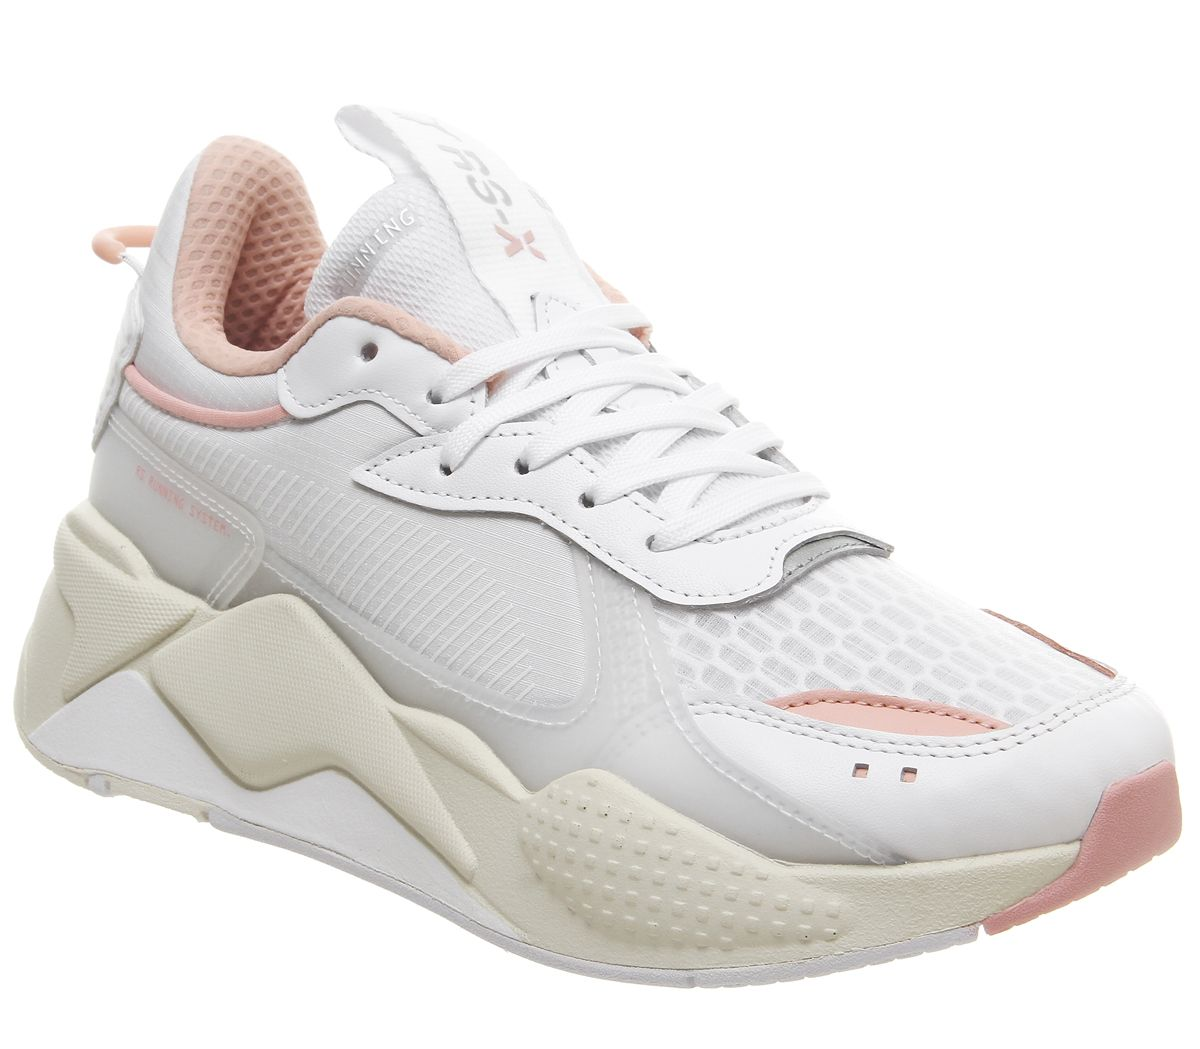 1a6a87aae32ee9 Puma Rs-x Tech Trainers White Peach - Hers trainers